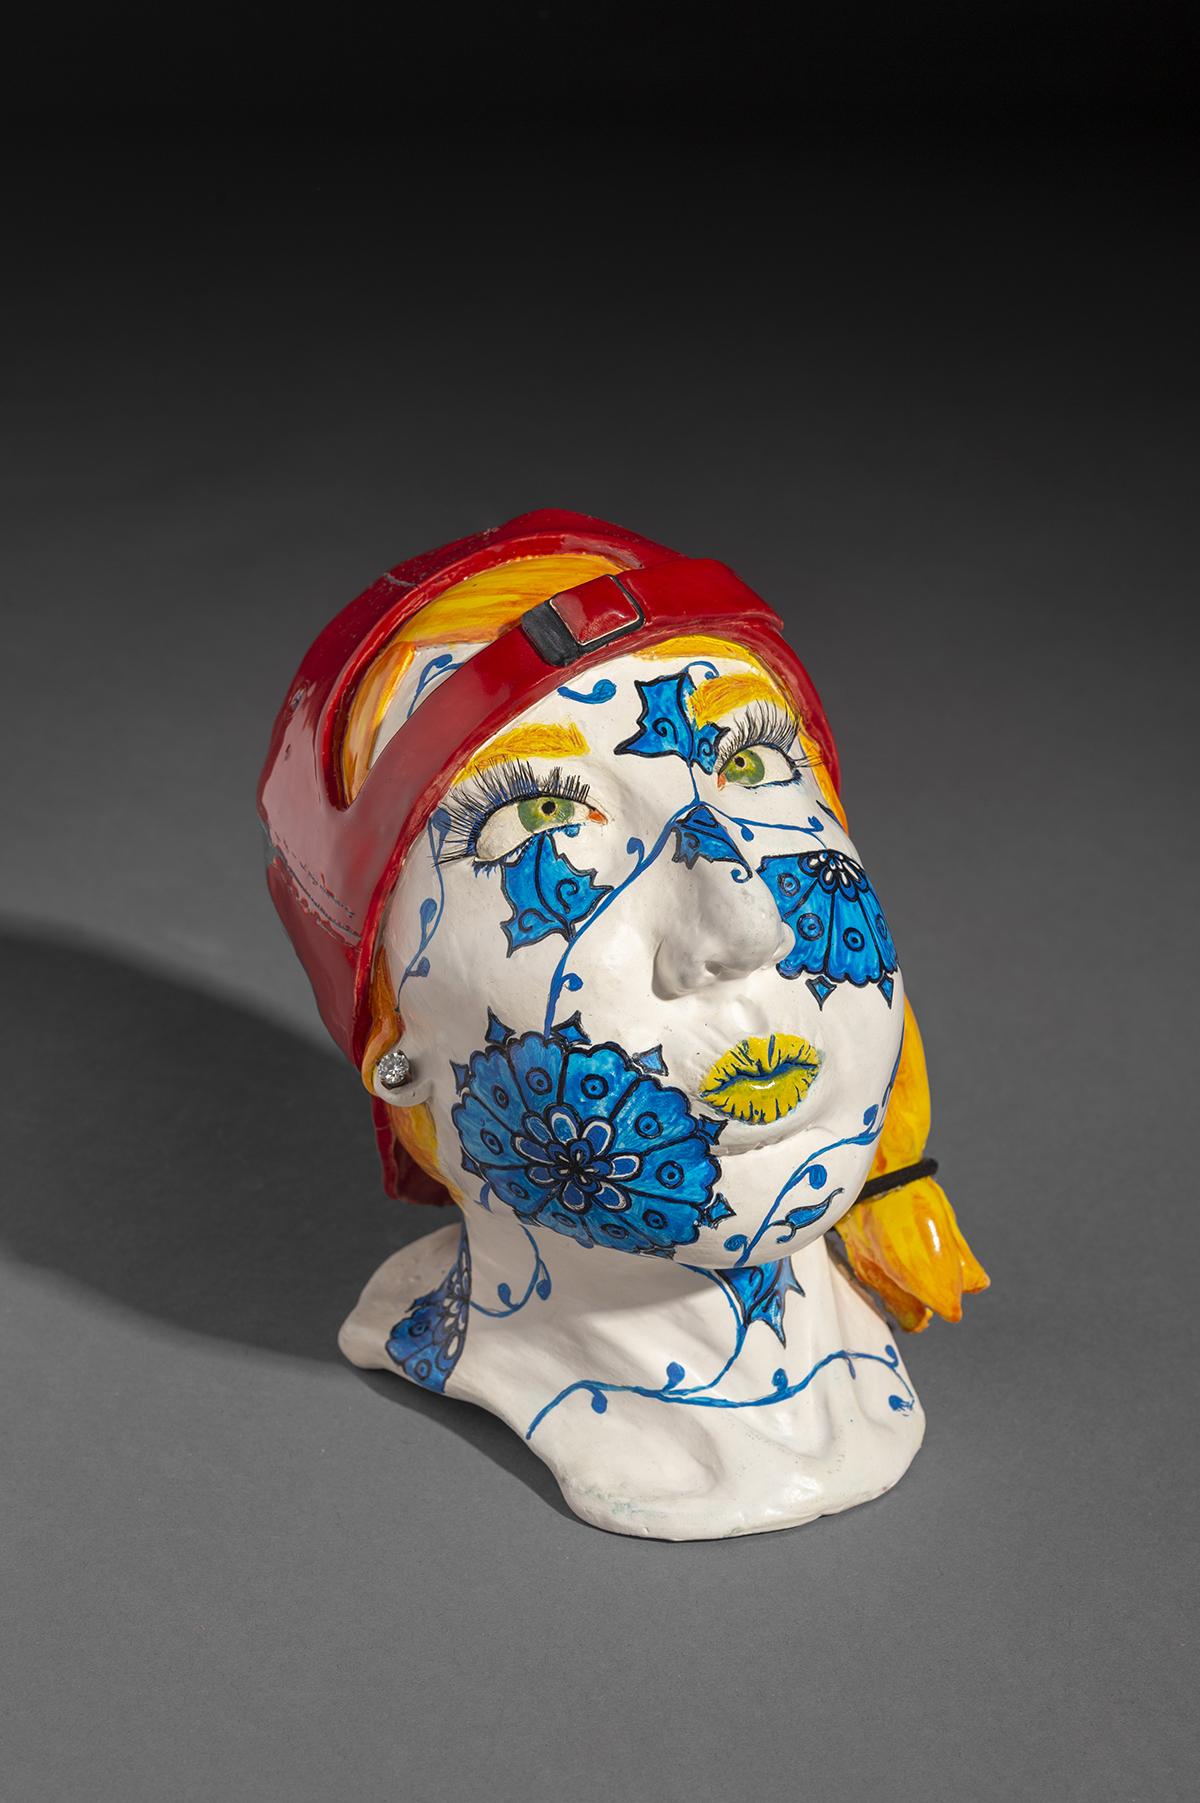 A vibrant ceramic sculpture of a face with detailed designs on it.